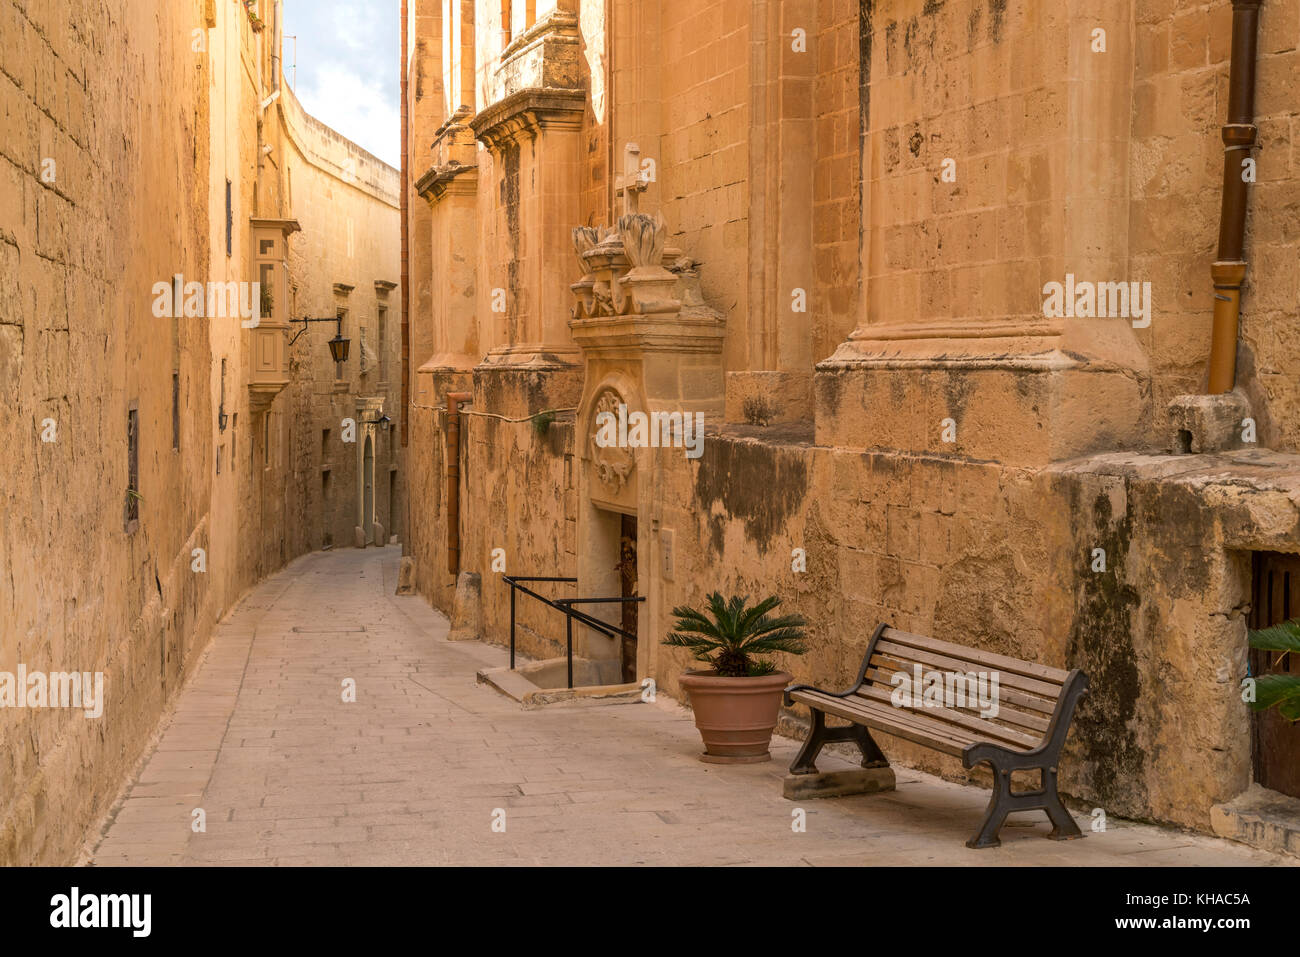 Narrow lane between old houses, Mdina, Malta - Stock Image